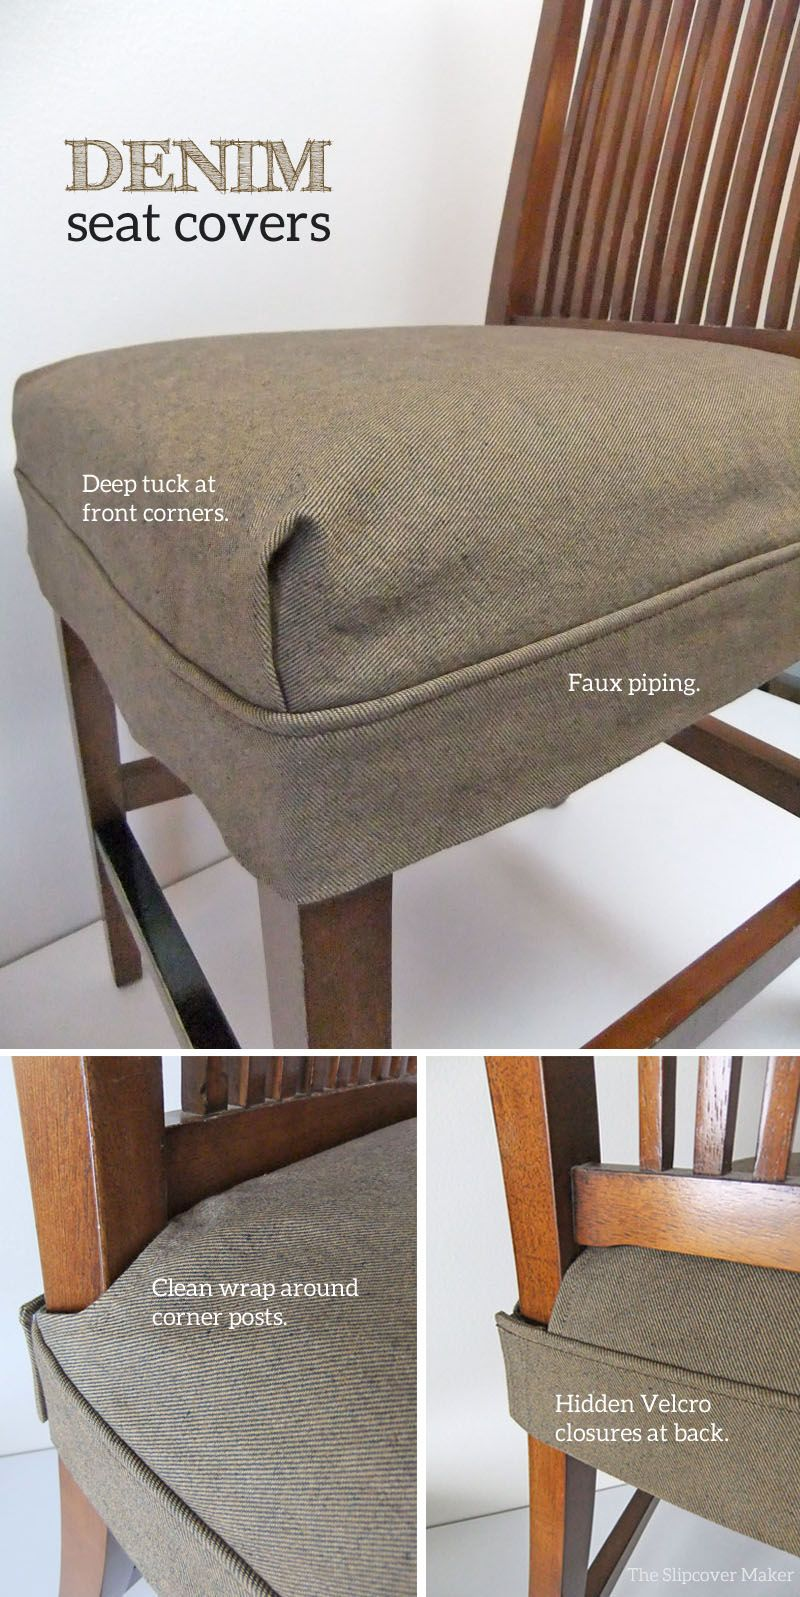 Tailored Denim Seat Covers Slipcovers for chairs, Seat